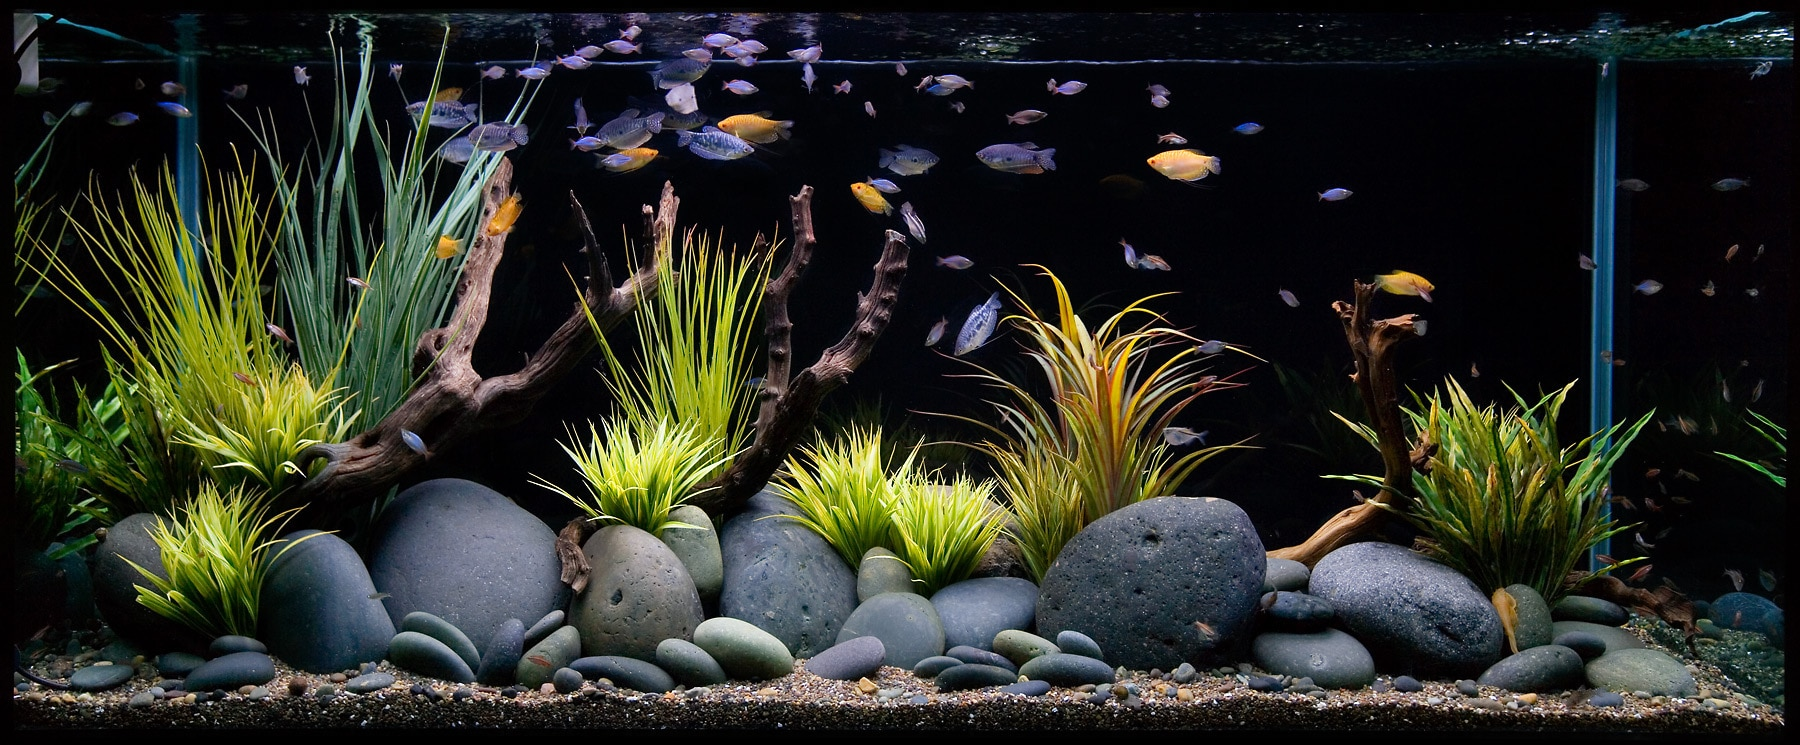 Fish aquarium just dial - Aquarium Shops In Hyderabad Aquariums In Hyderabad We Based In Hyderabad From Many Years